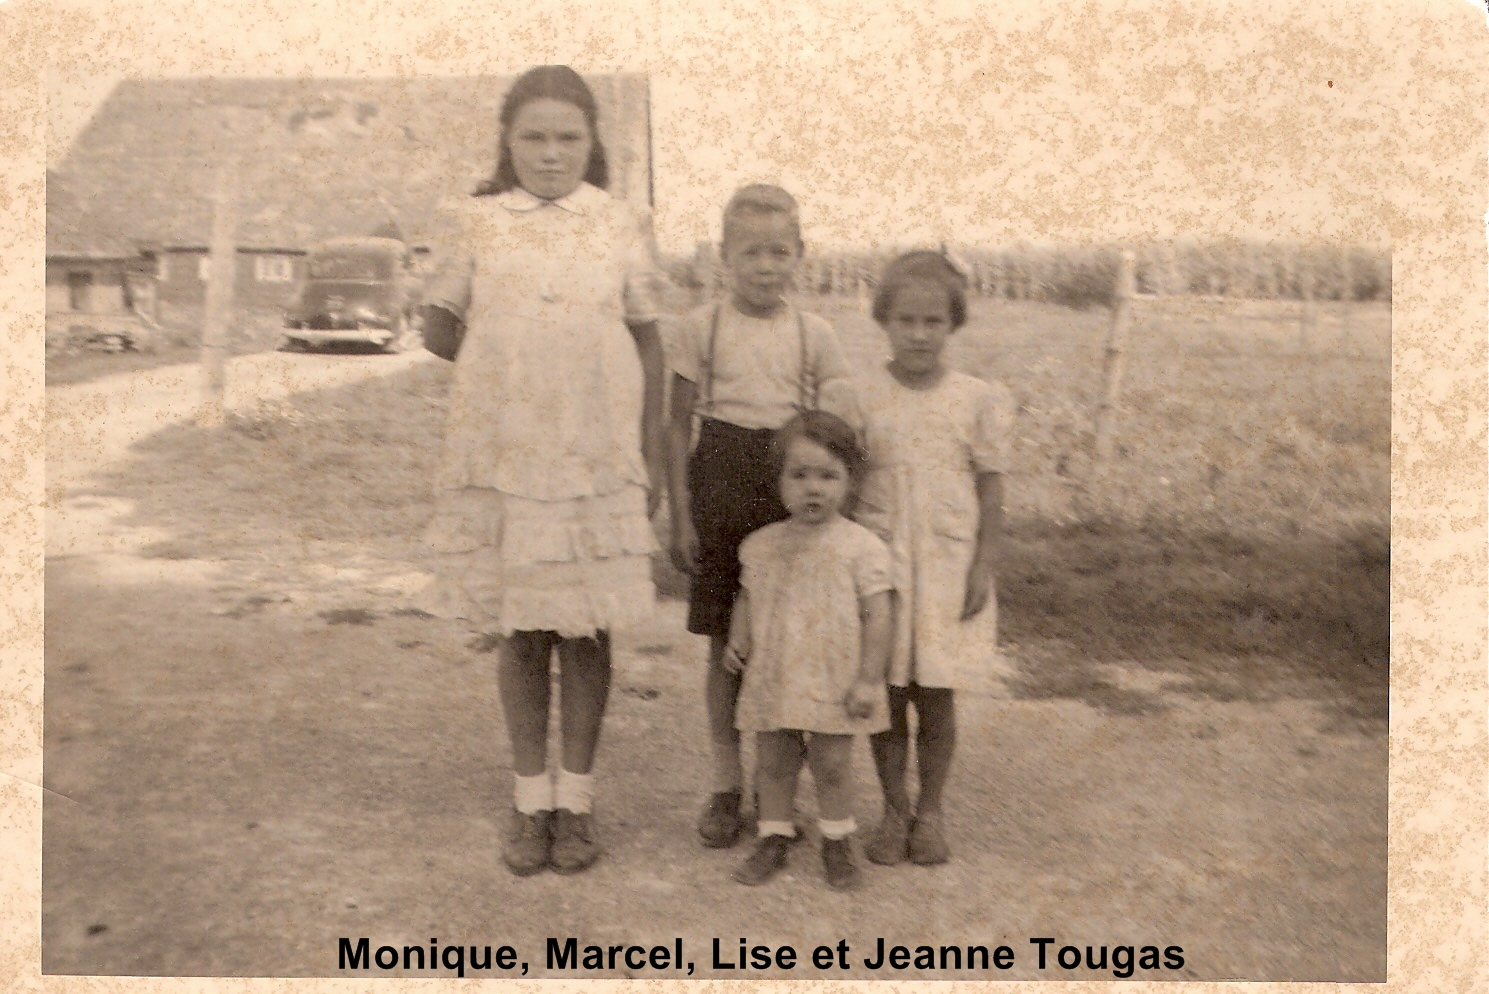 Monique Marcel Lise et Jeanne Tougas